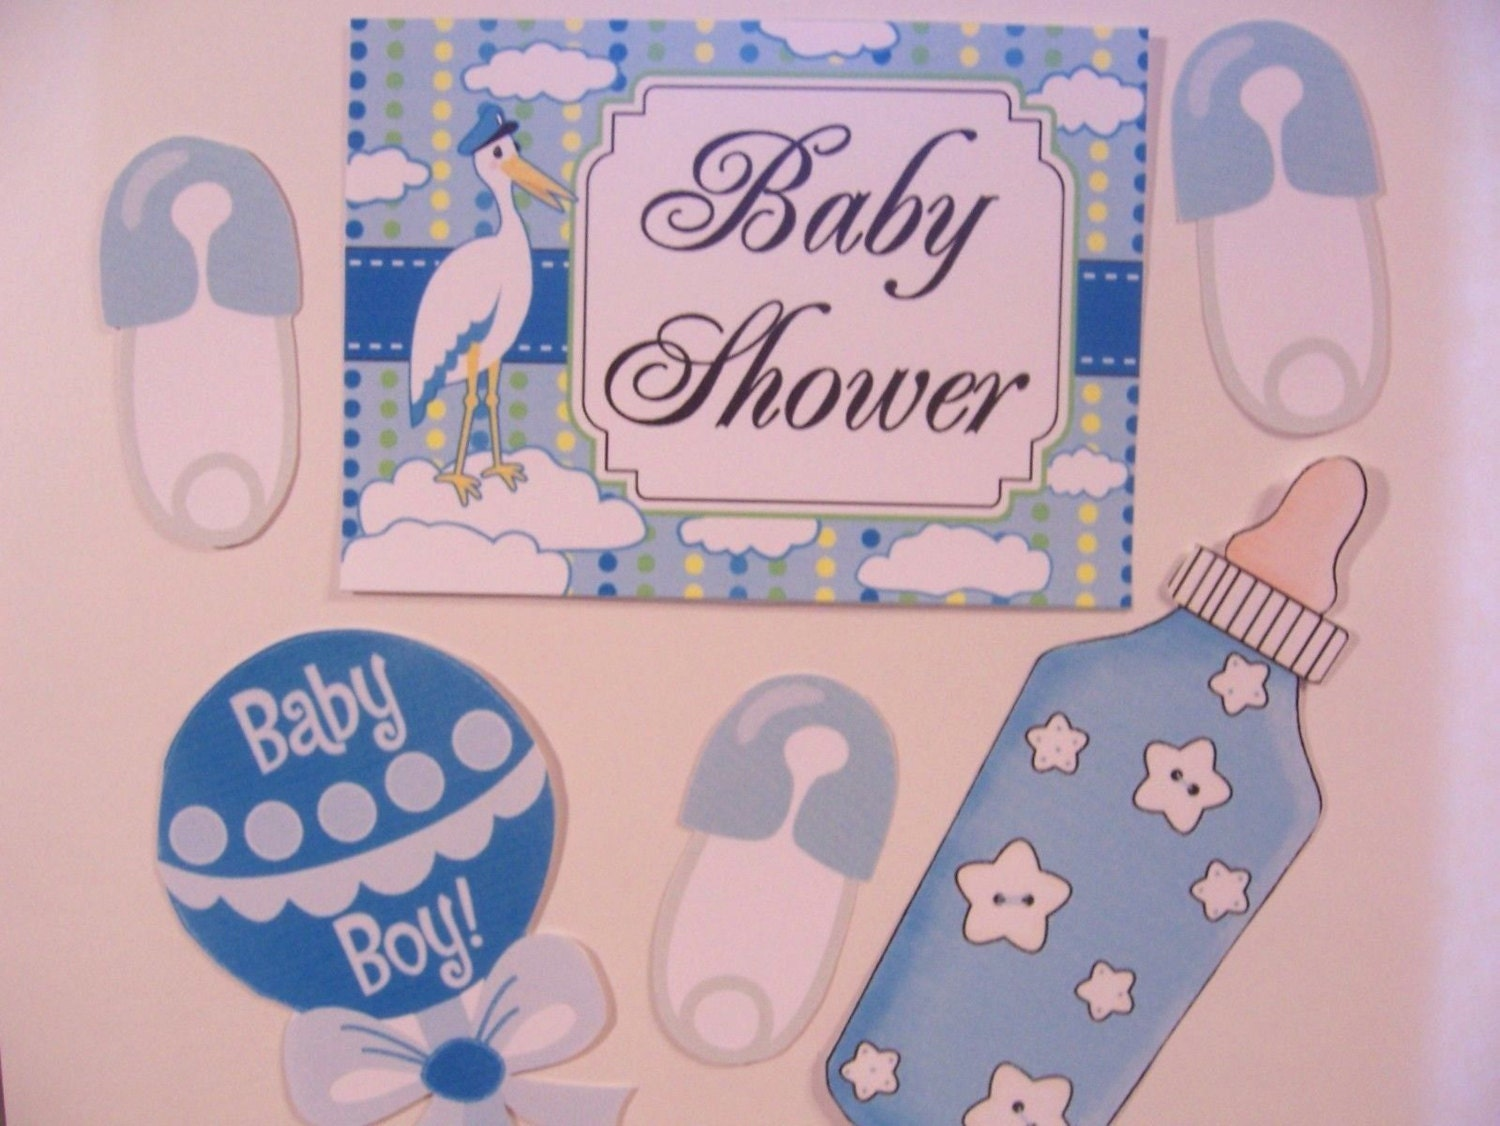 Baby shower door decorations laminated 6pc set baby boy for Baby shower door decoration